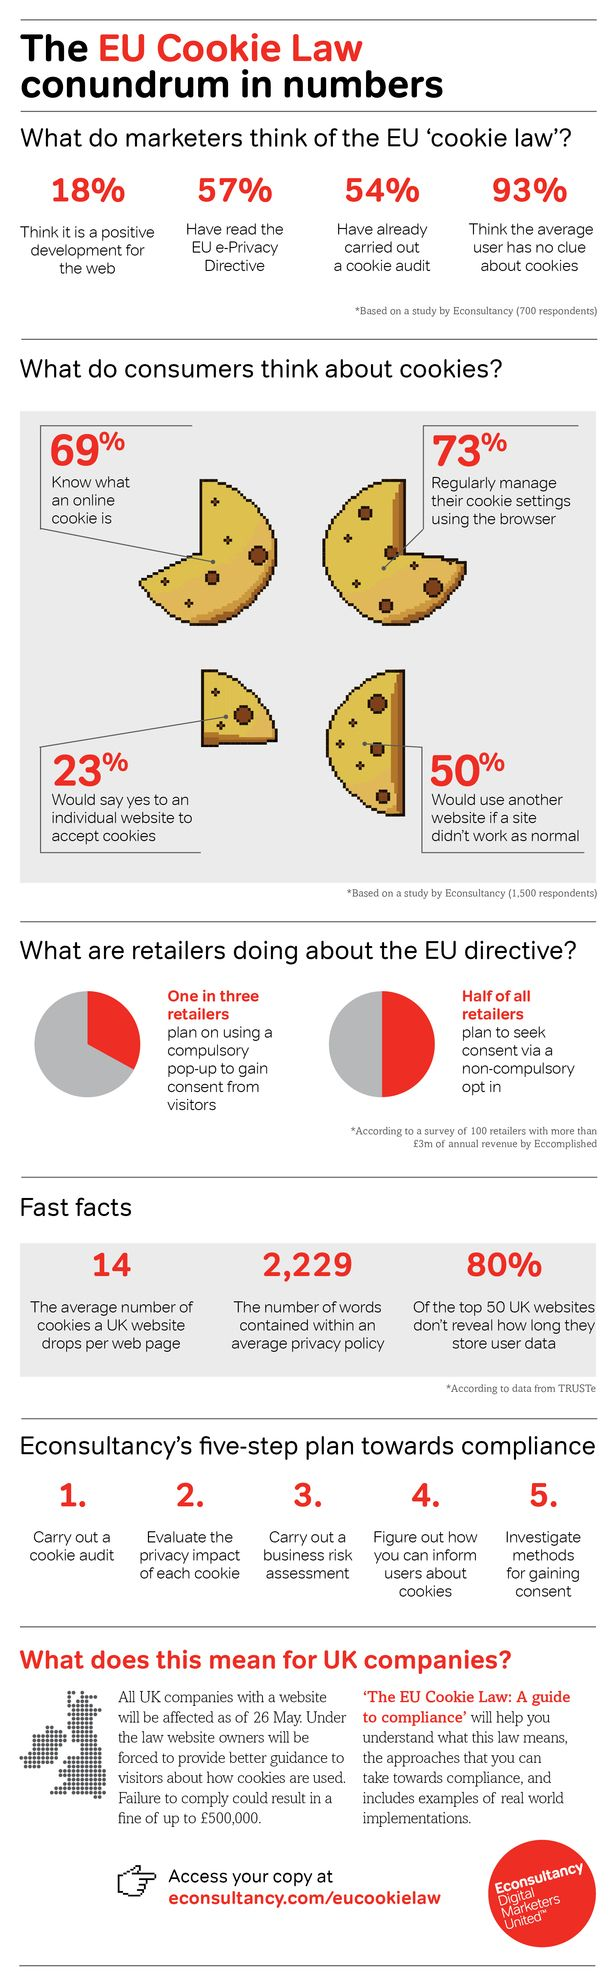 EU Cookie Law: The conundrum in numbers [Infographic]: Cookie Law, Cookies Law, Eu Cookies